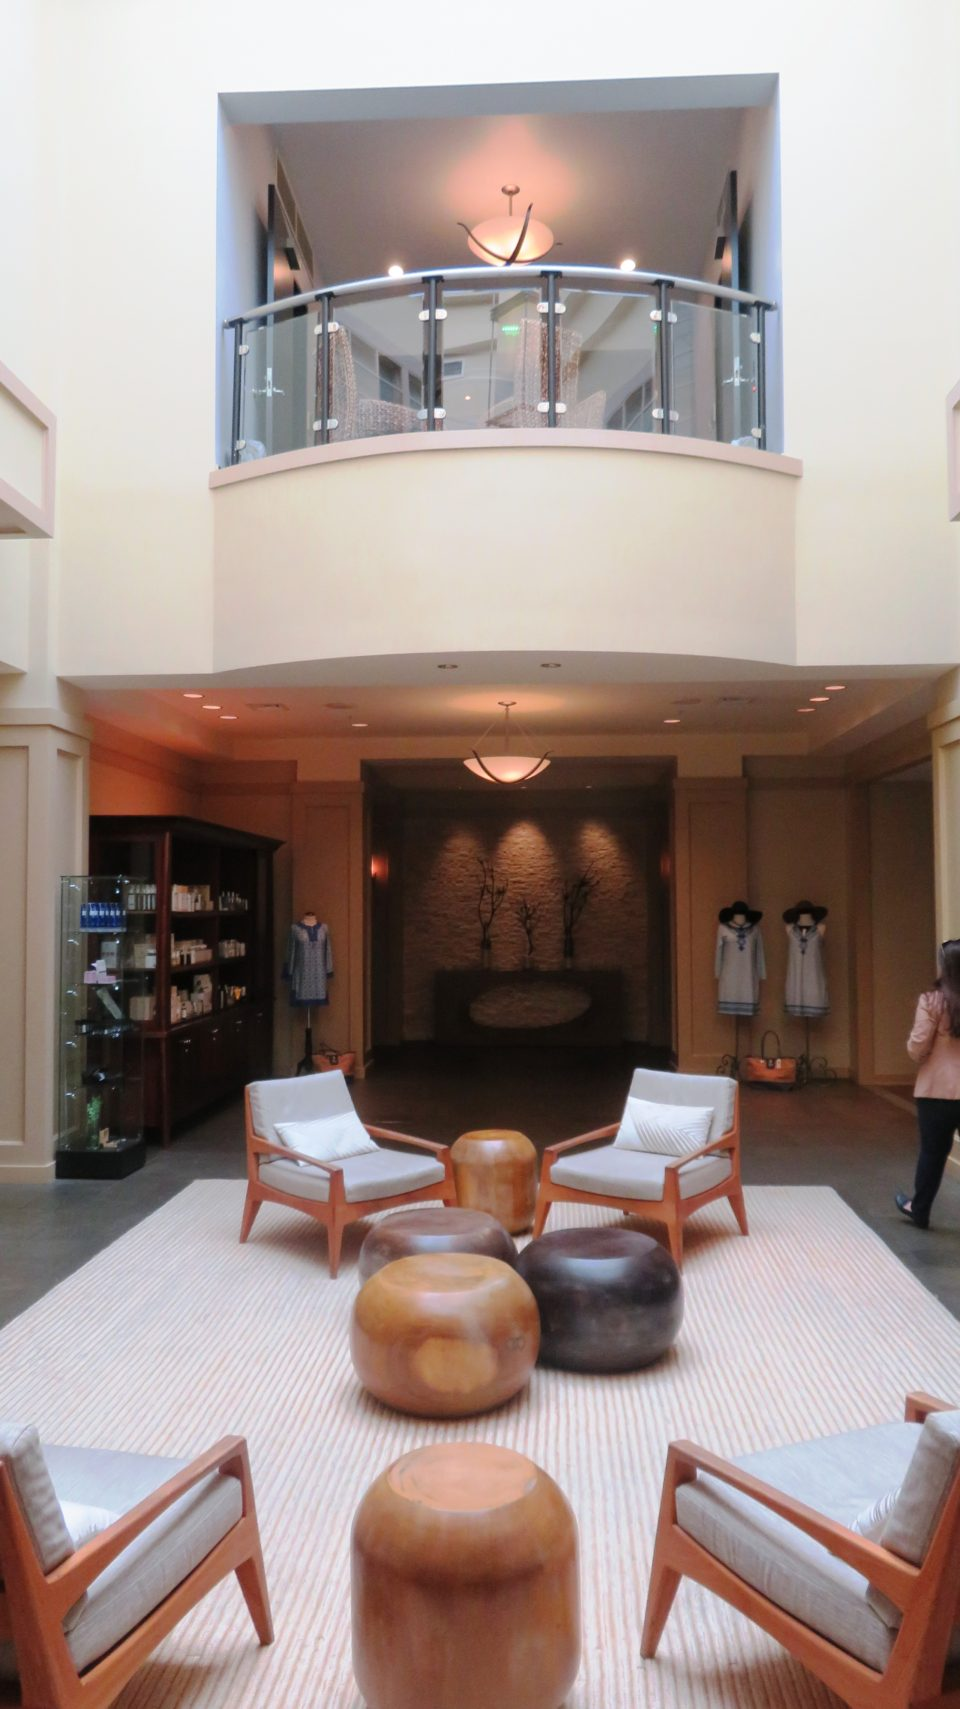 Stillwater Spa at the Hyatt Regency Coconut Point ~ Gem of a Florida Resort